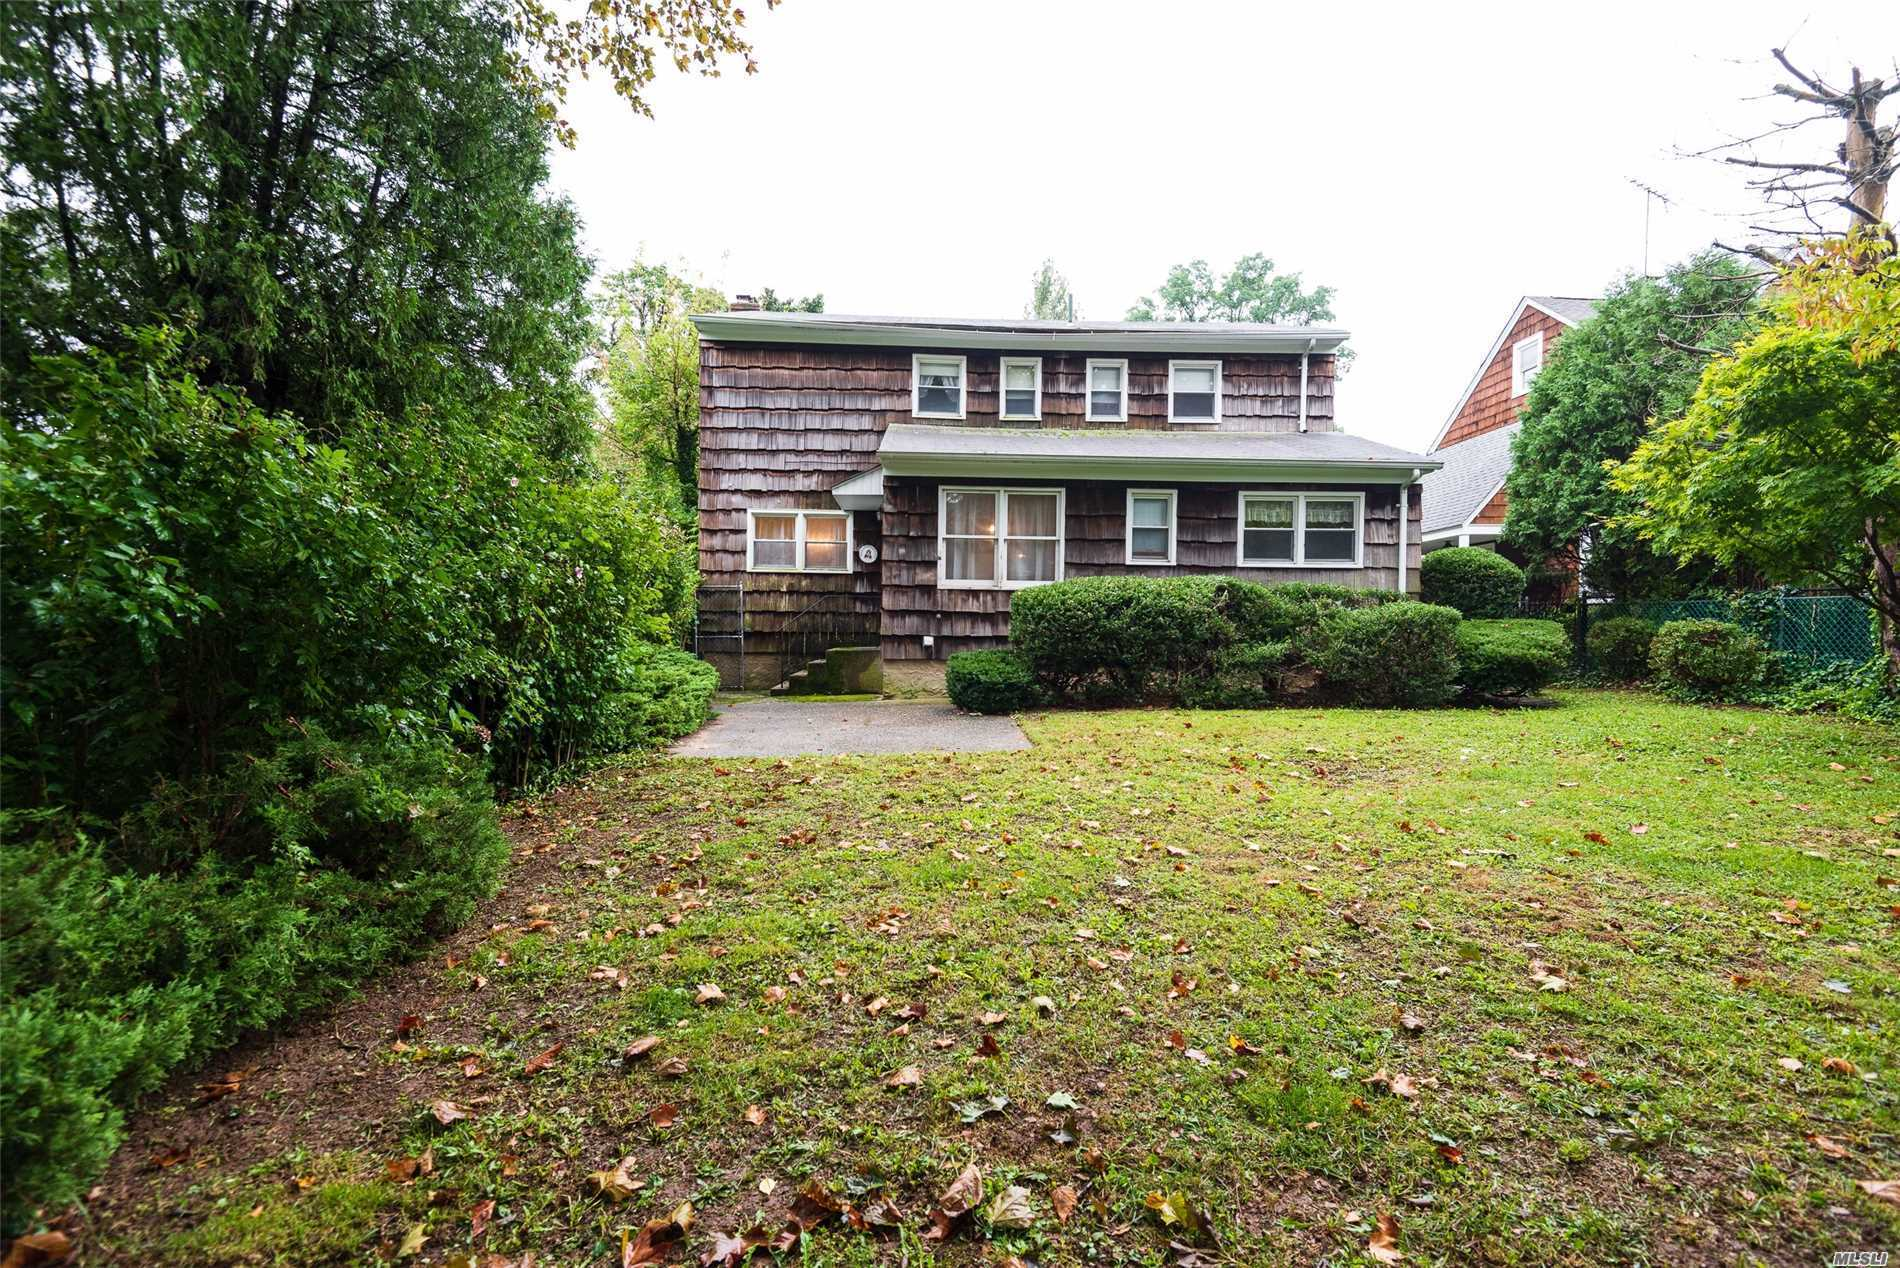 Great Opportunity To Own Classical Colonial 5 - Bedrooms, 2.5 Bathroom House In The Heart Of Locust Valley. Living Rm With Fireplace, Dinning Rm, Den! Nice And Private Back Yard, . 2 Fl - Has Spacious M/B With Full Bath, 4-Br, 1-Full Bath. Attic For Storage. Lots Of Closets, Great Layout. A True Gem. Don't Miss It..